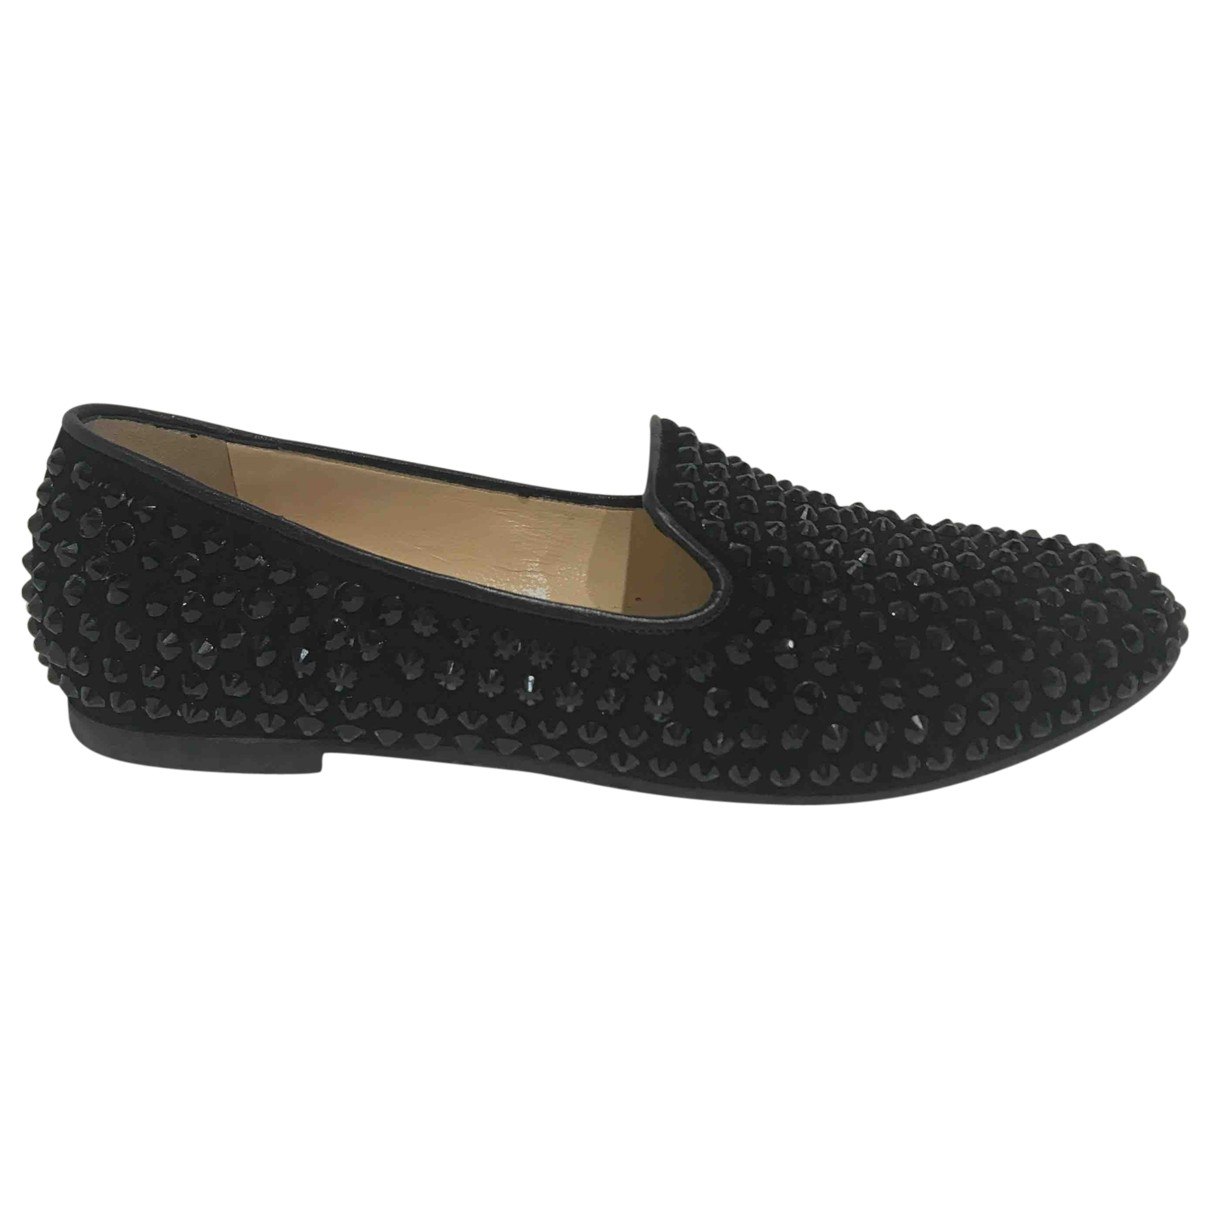 Flavio Castellani \N Black Suede Flats for Women 38 EU